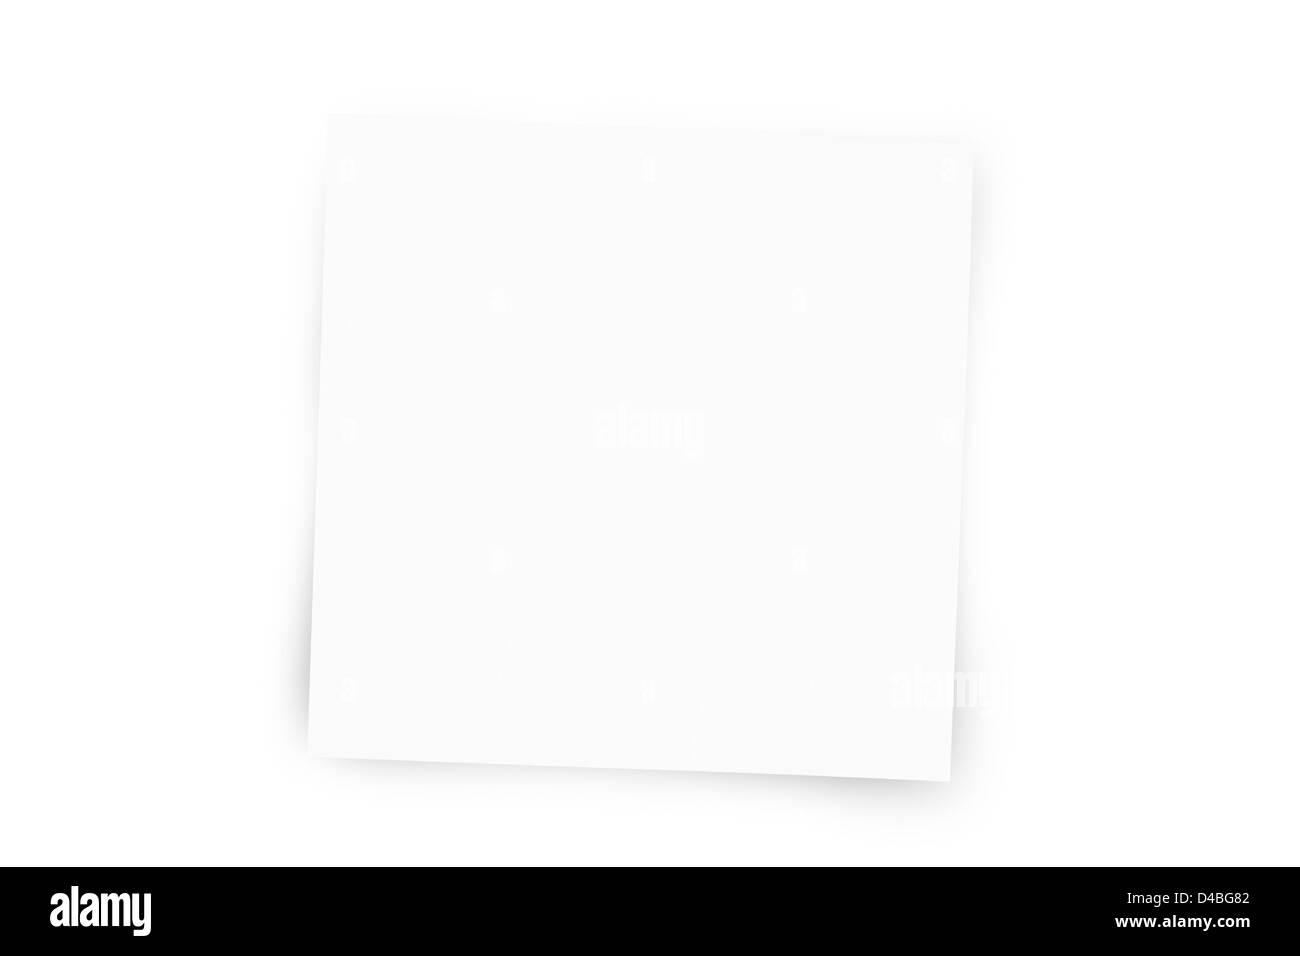 Adhesive Note - Stock Image